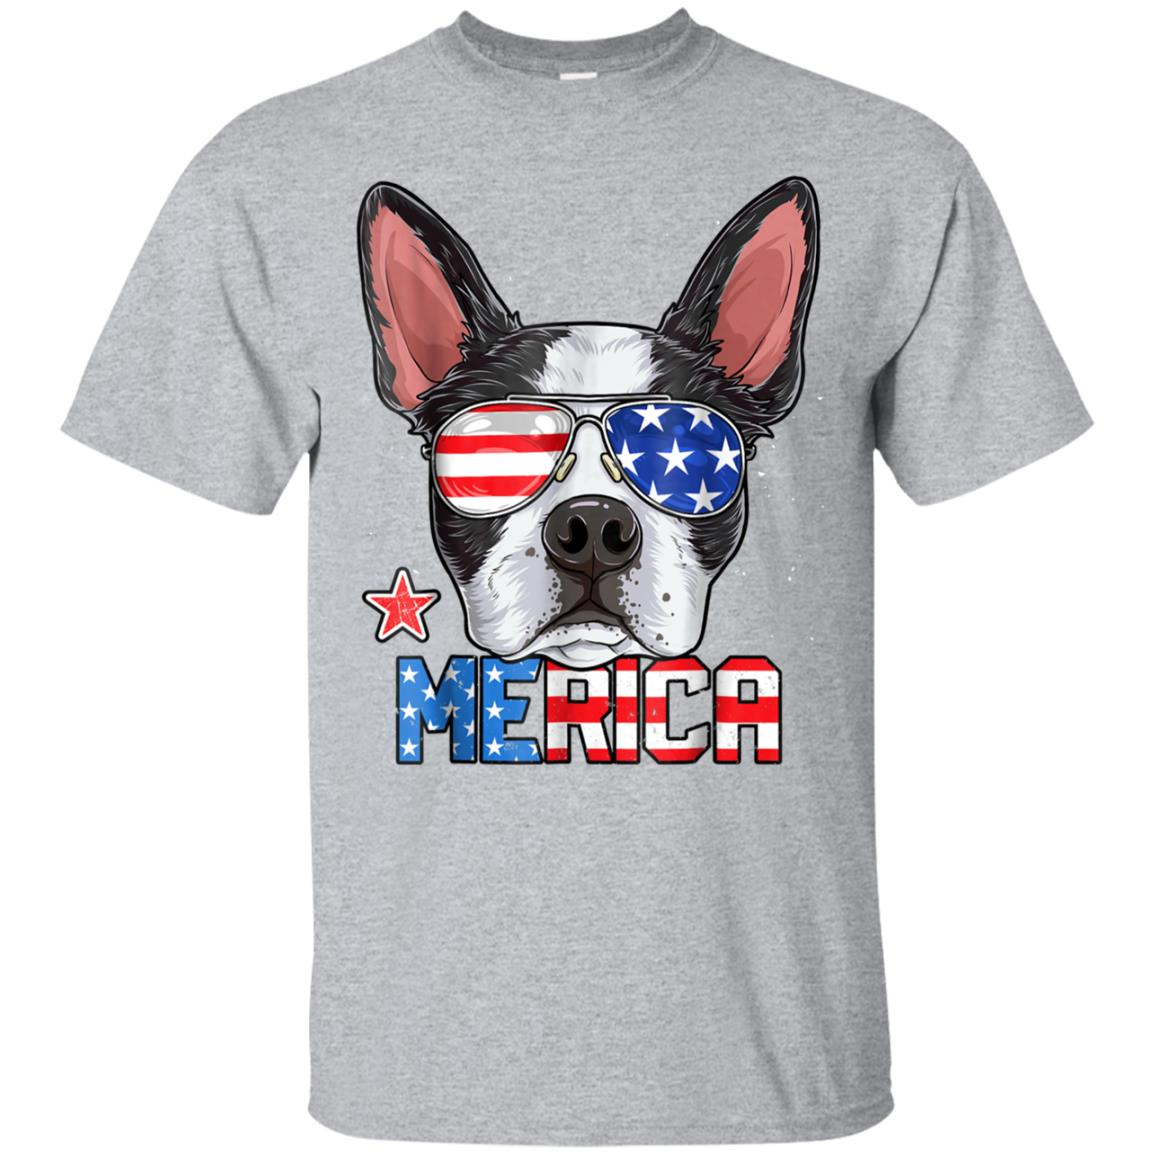 Boston Terrier Merica 4th of July T shirt Men Boys Dog Puppy 99promocode